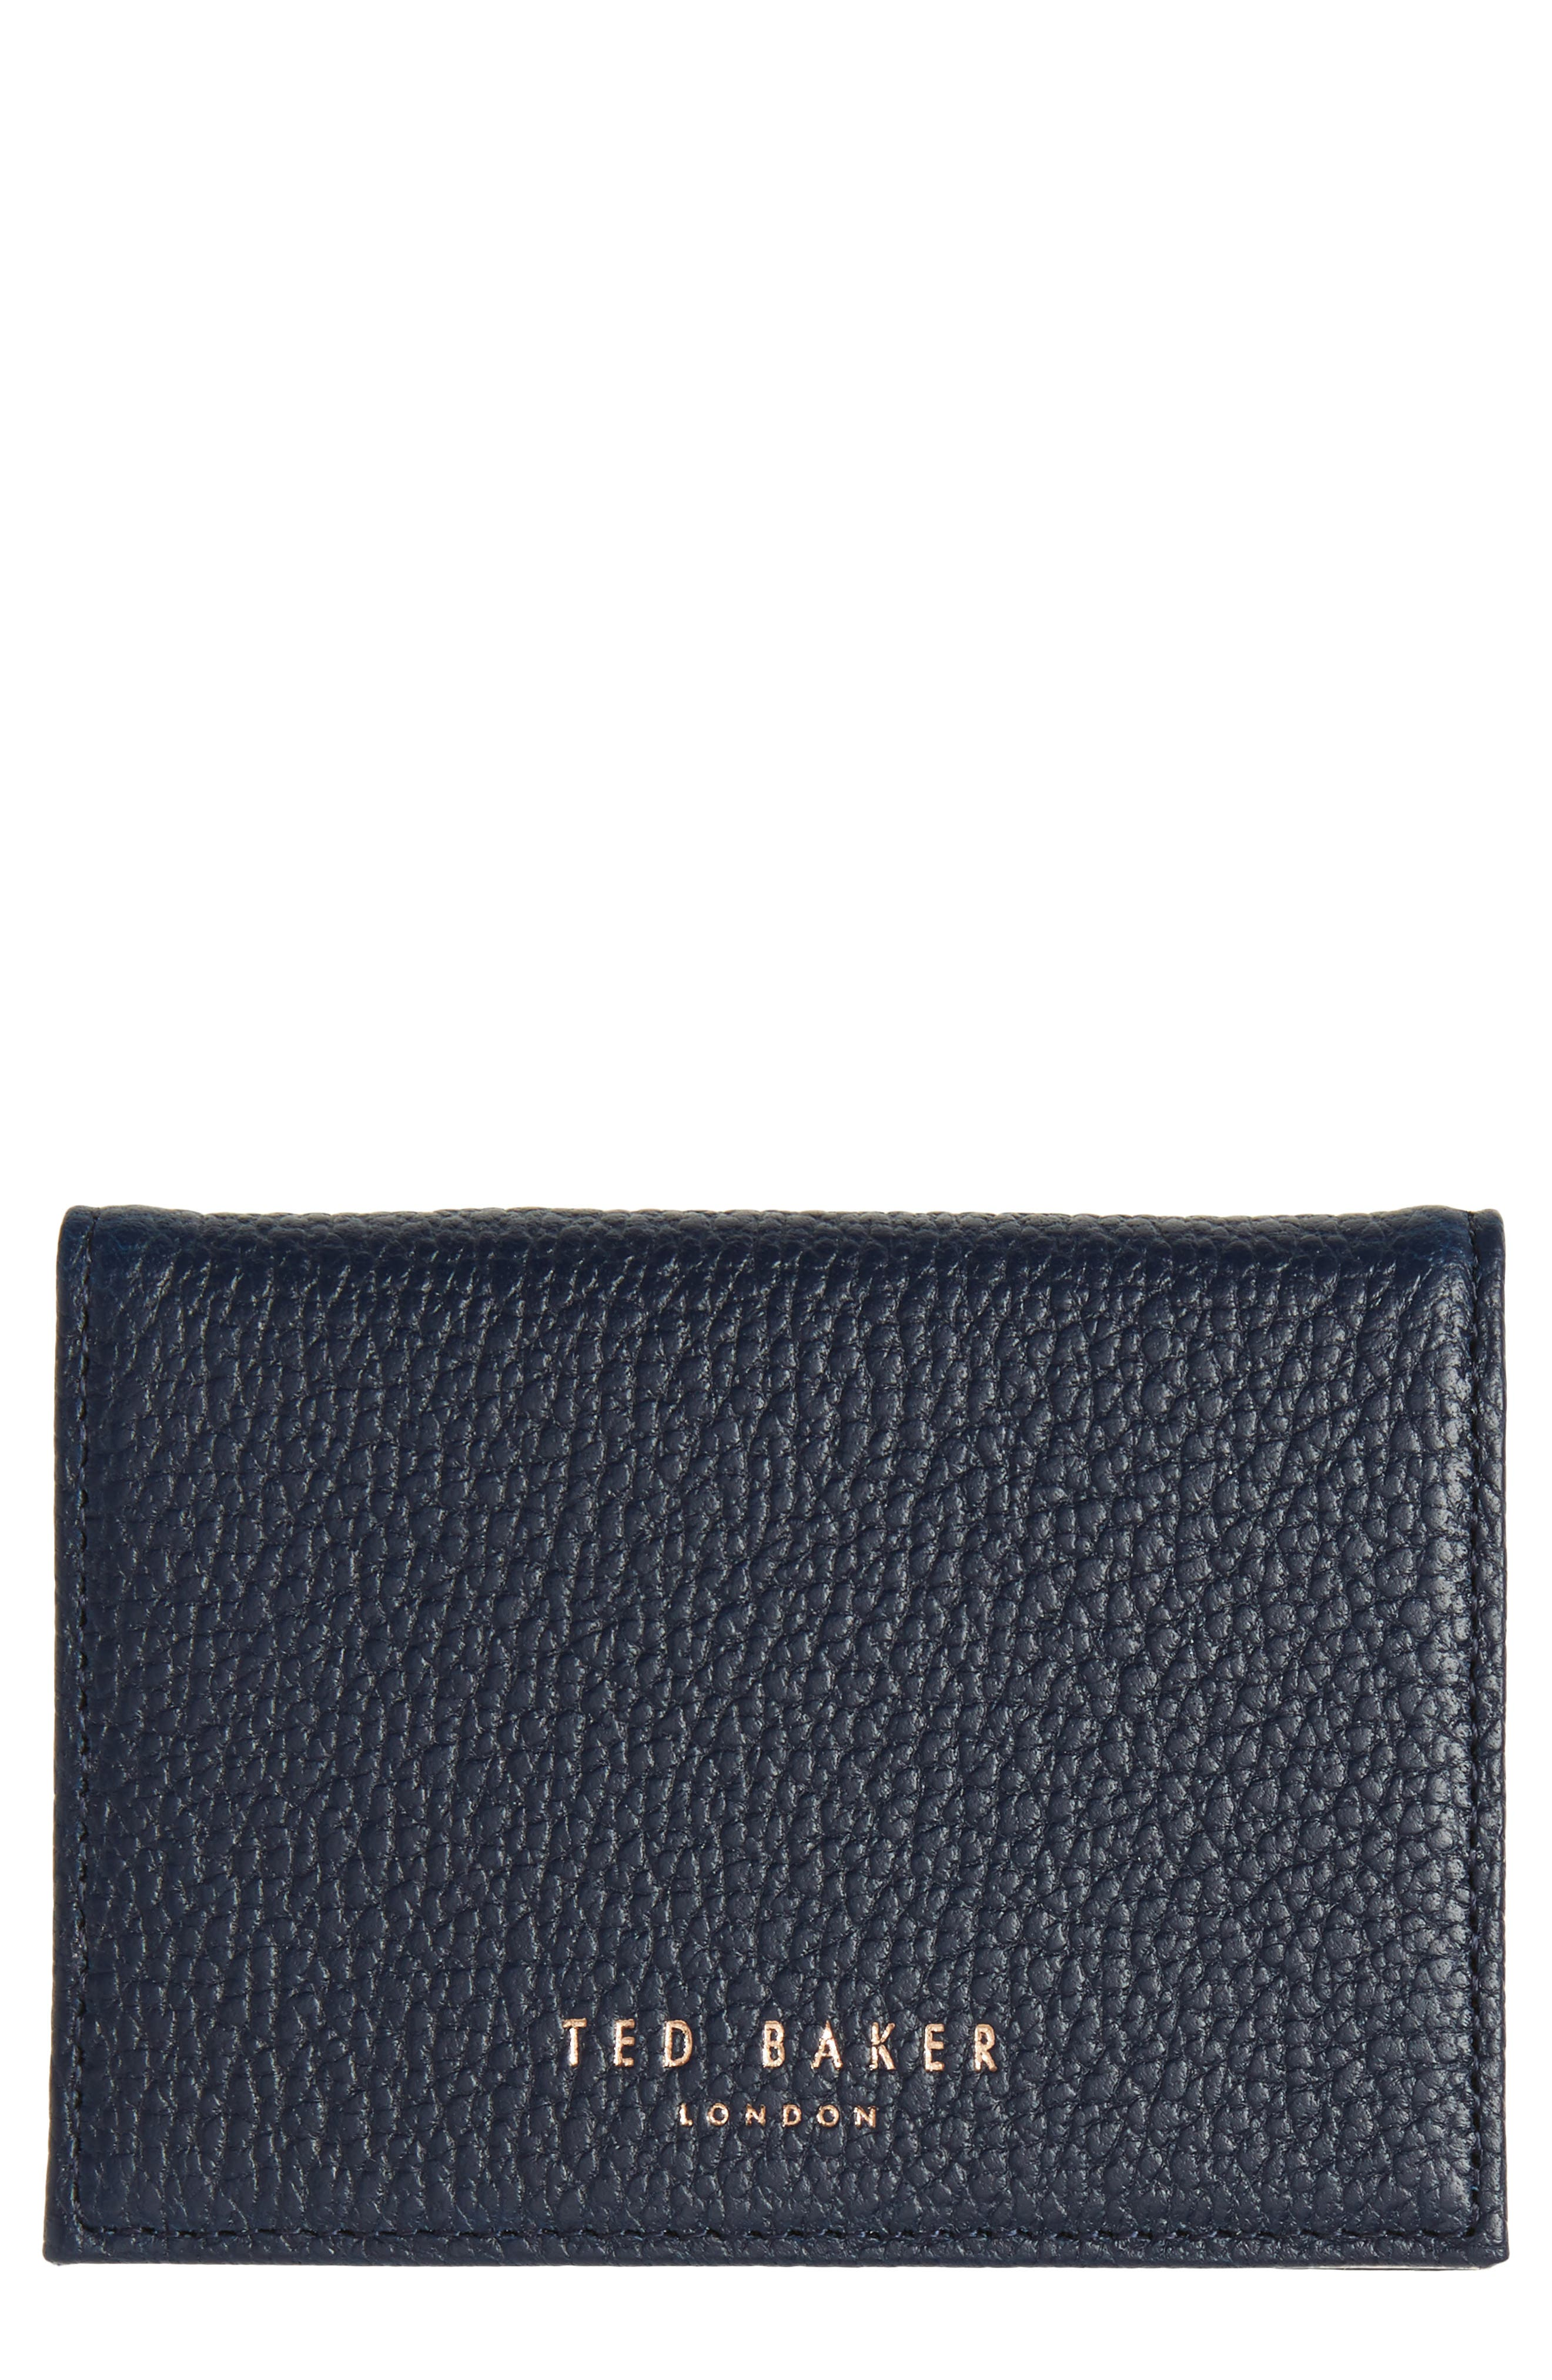 Ted Baker London Braylon Pebbled Leather Card Case